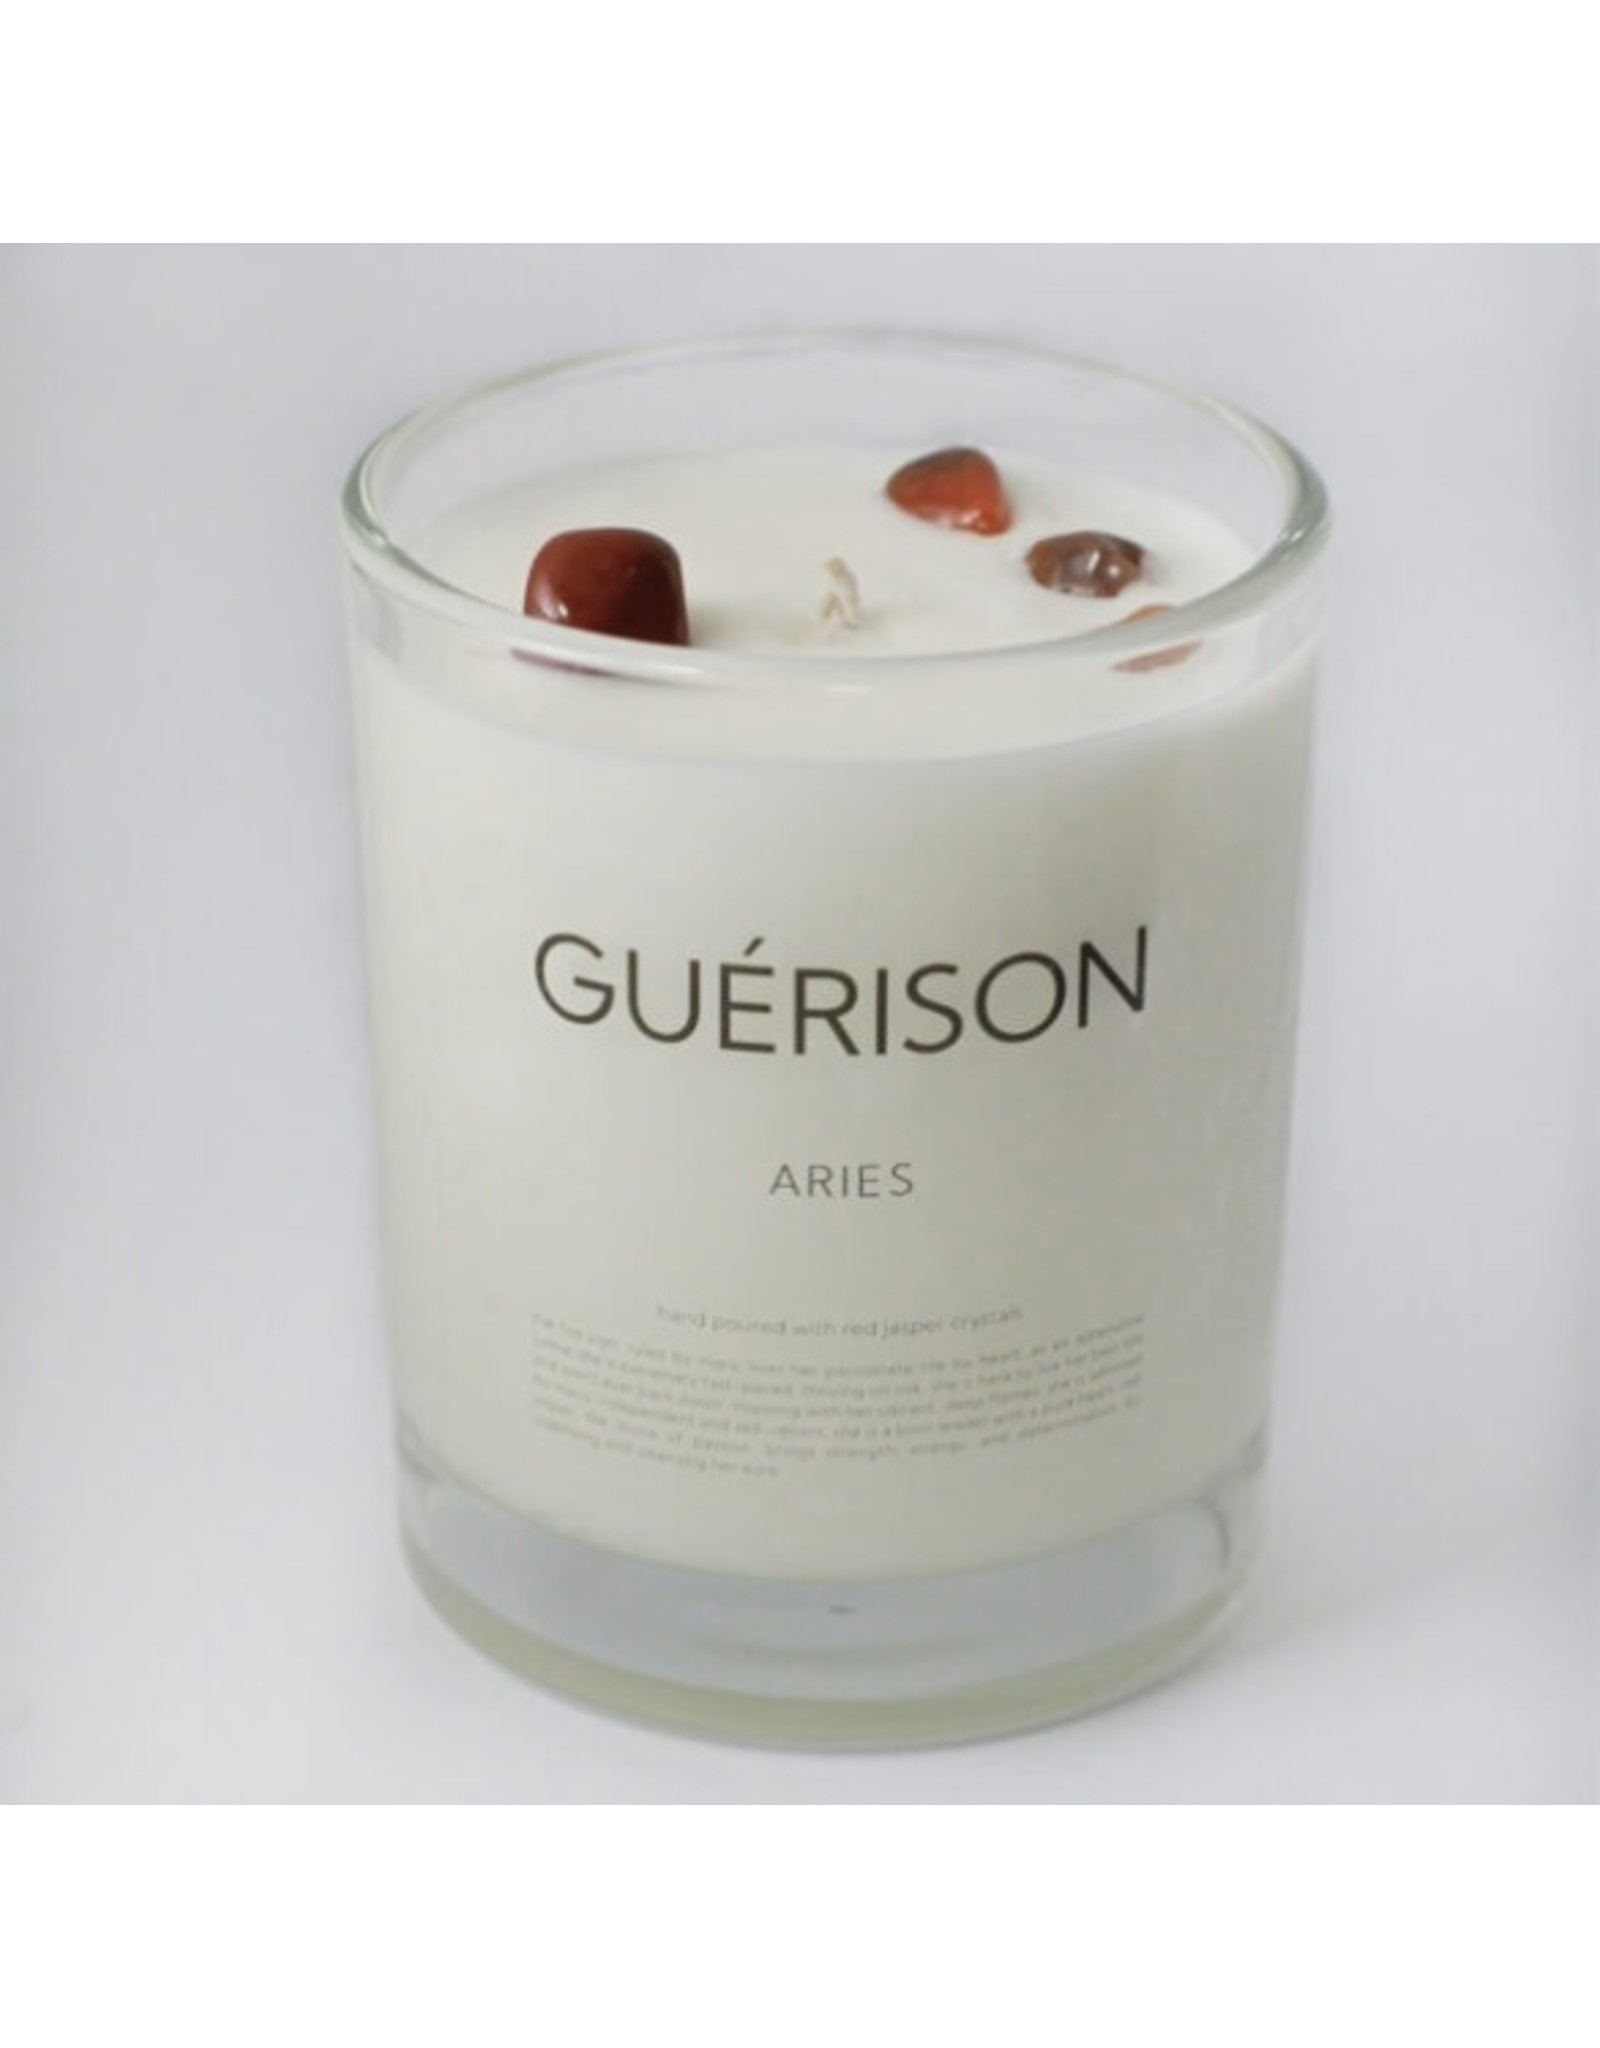 Guérison Aries Candle, 220g